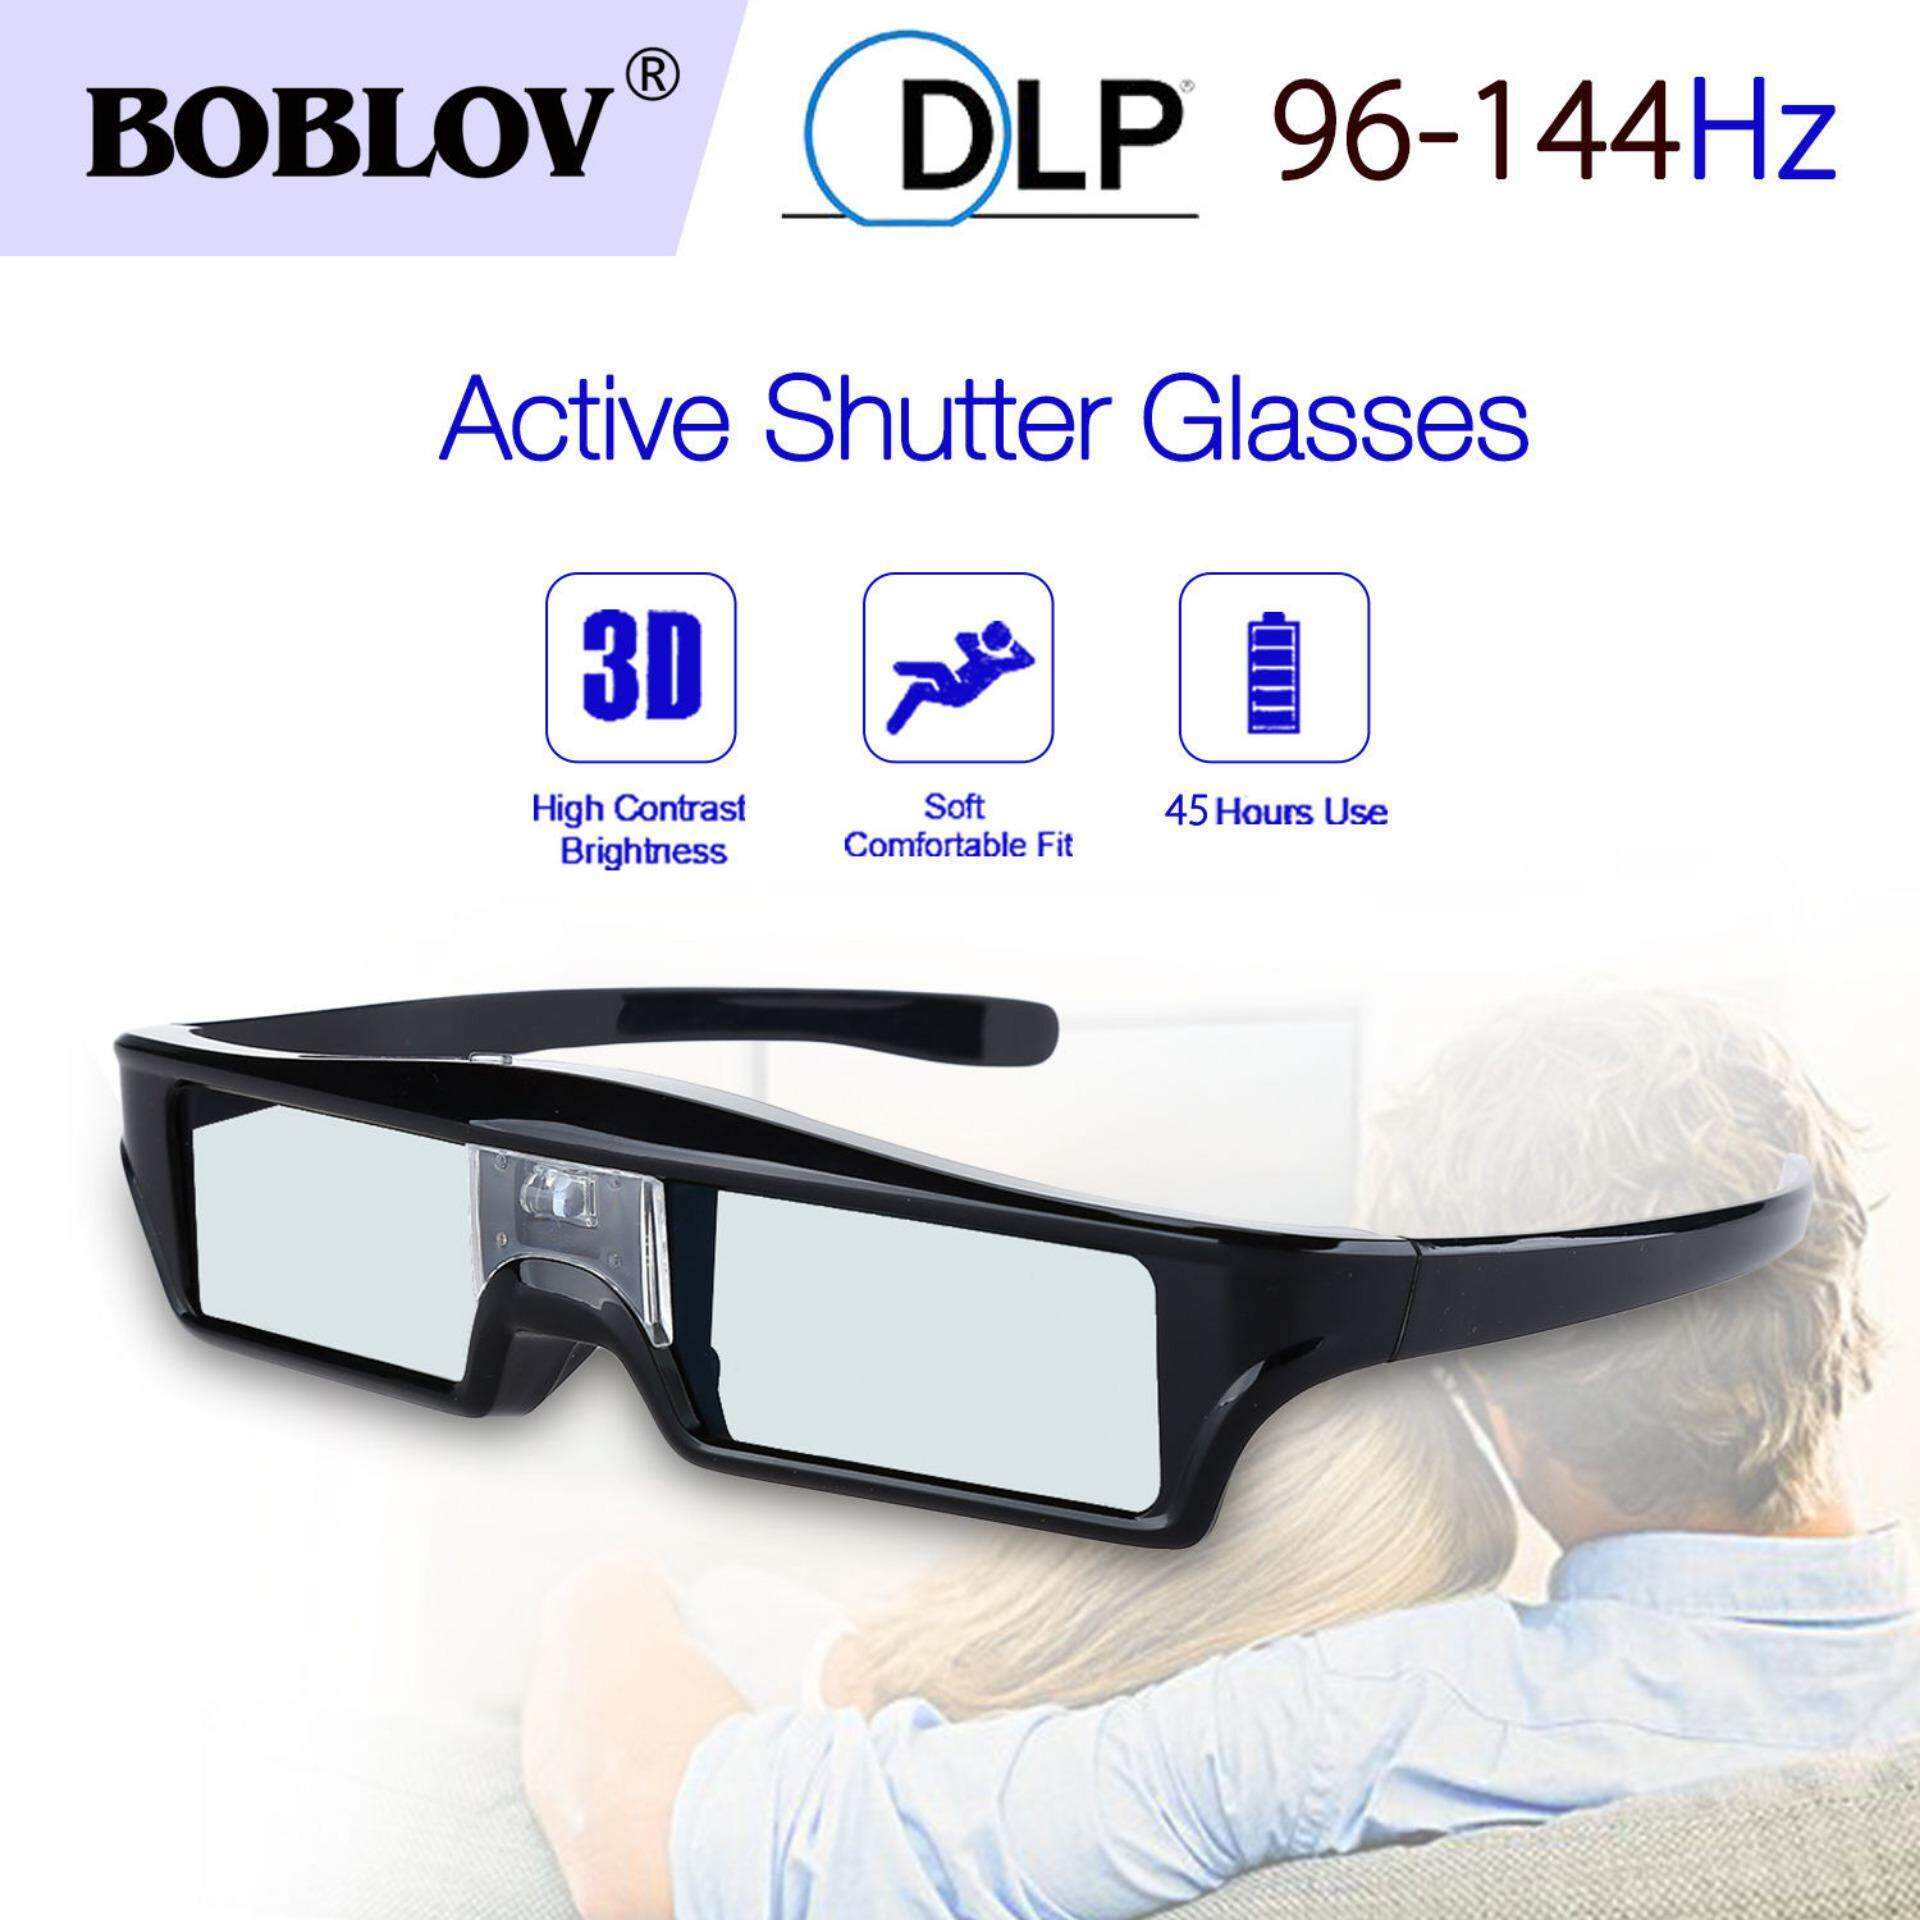 Boblov 3d Dlp-Link 144hz Active Shutter Glasses 8m Movie For Dlp Link Projector - Intl.